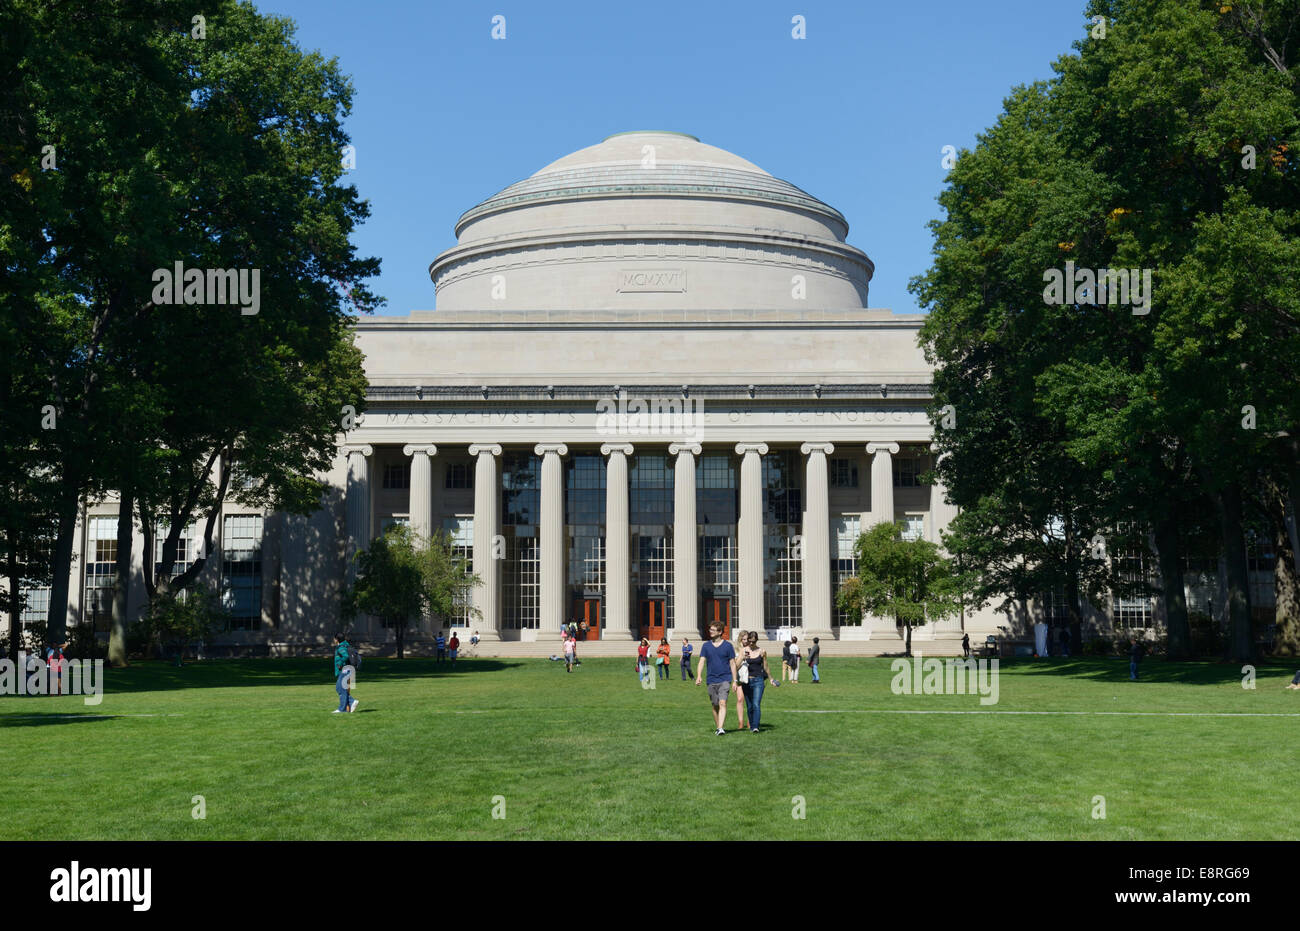 killian court and building 10 mit massachusetts institute of stock photo royalty free image. Black Bedroom Furniture Sets. Home Design Ideas